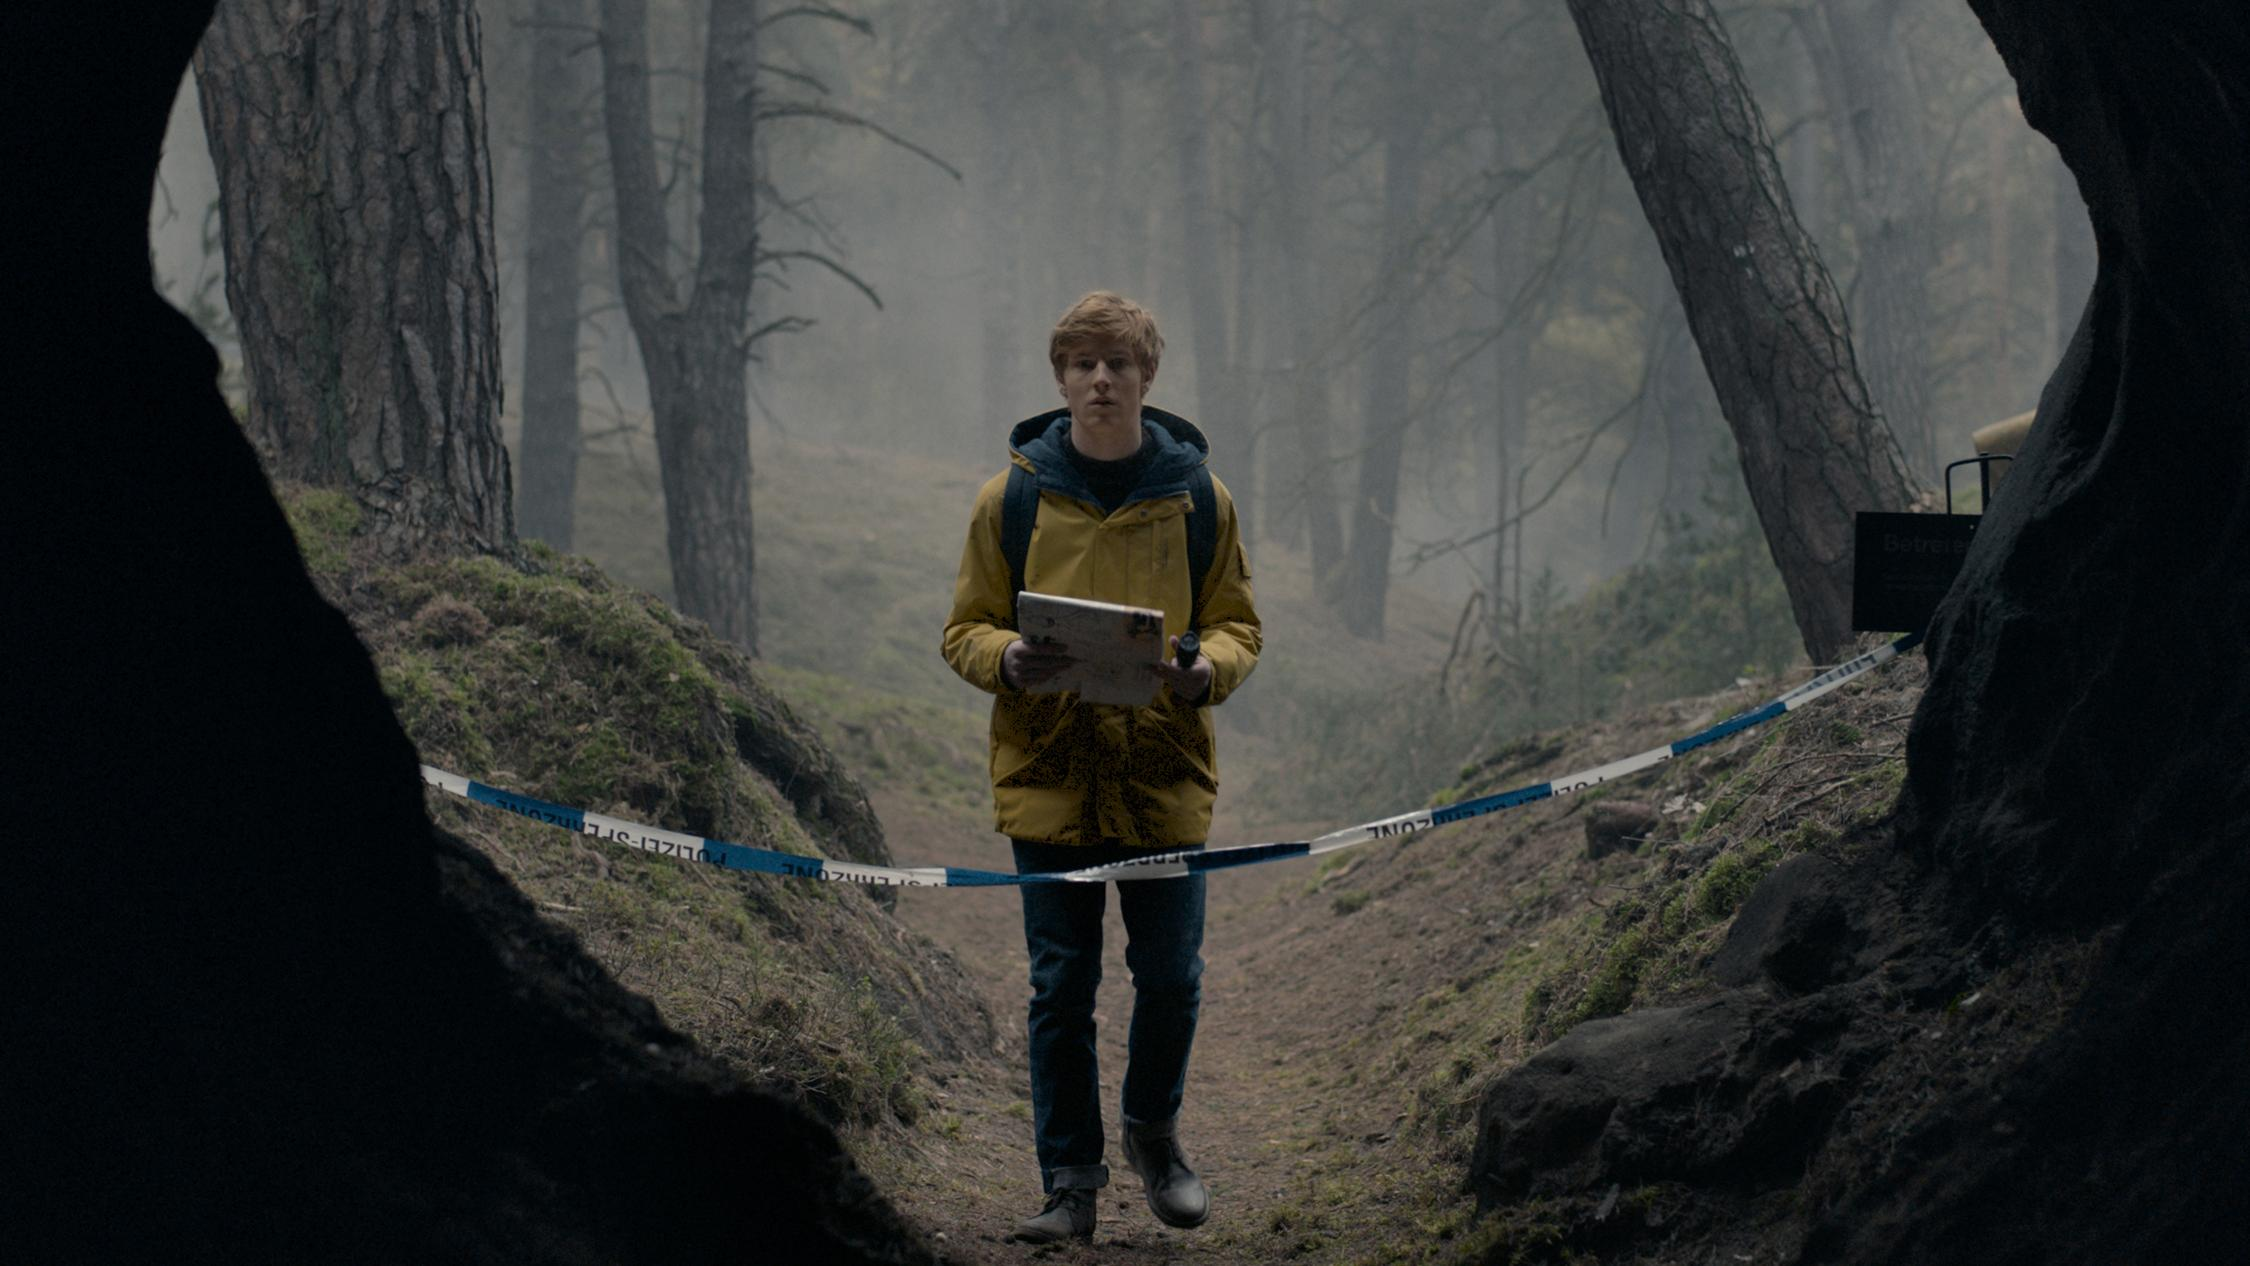 A boy stands in woods